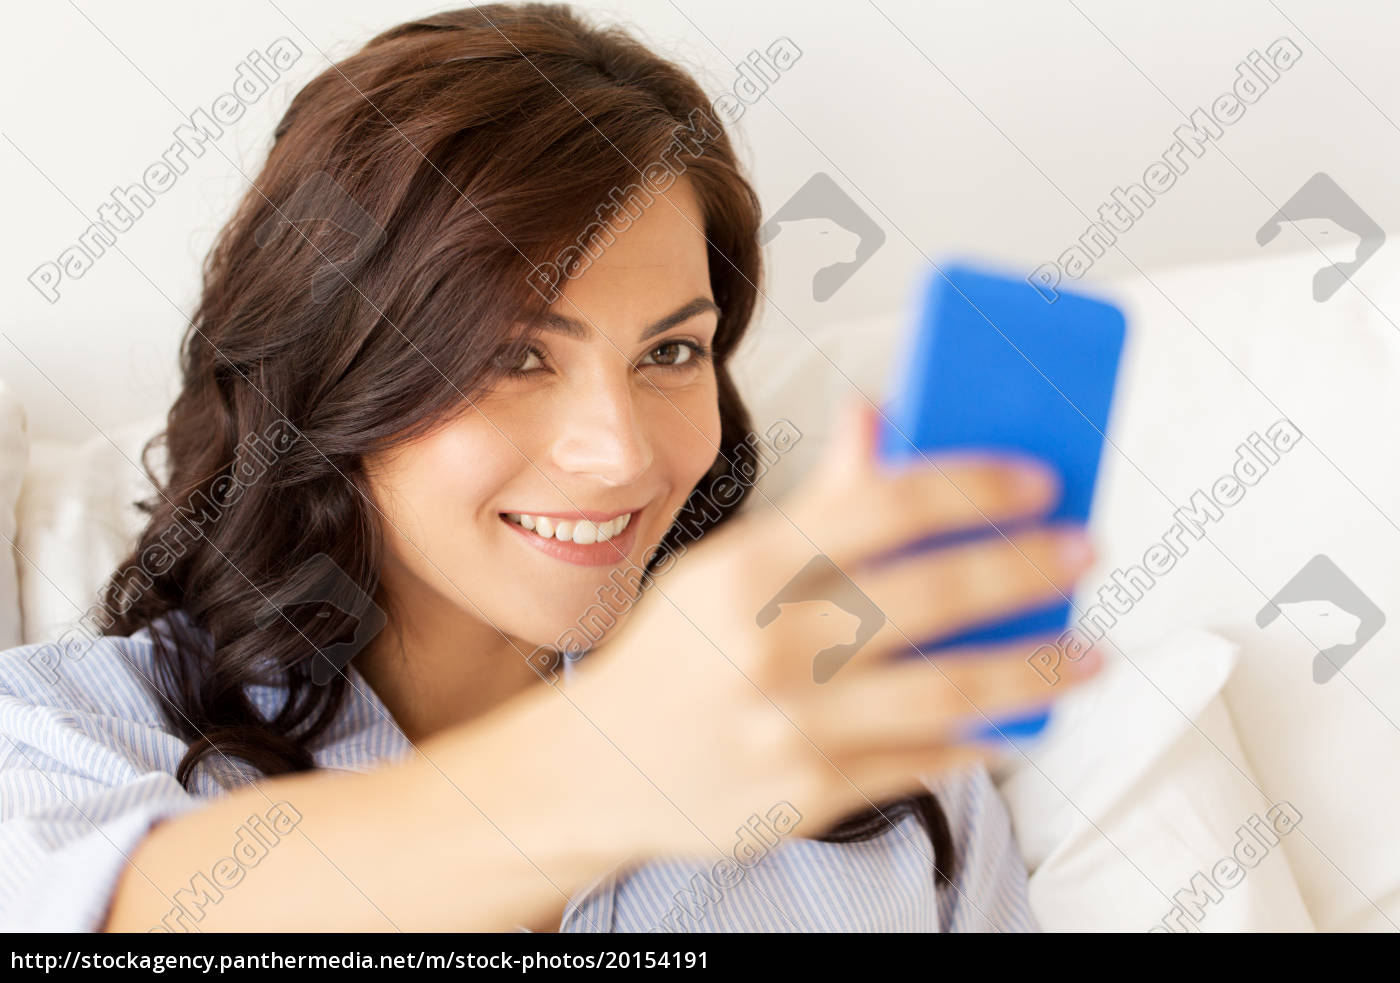 happy, woman, taking, selfie, with, smartphone - 20154191